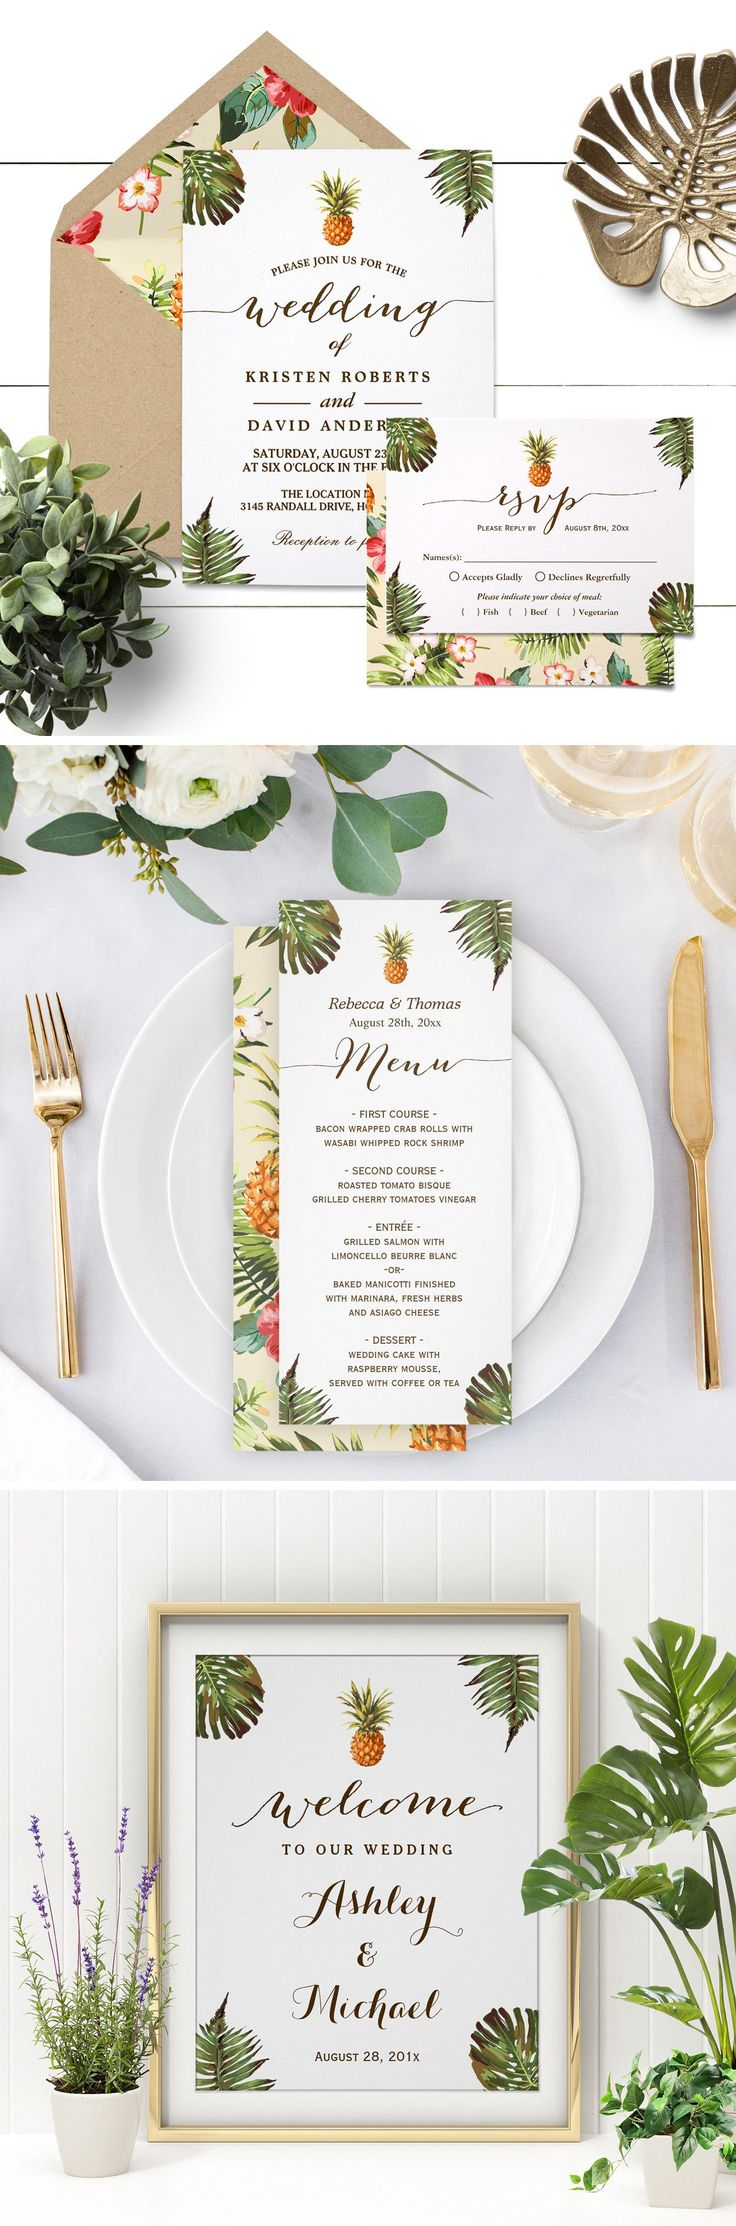 sister marriage invitation letter format%0A Planning a destination wedding in summer season  This Tropical Leaves  Pineapple Luau Wedding Invitation Suite